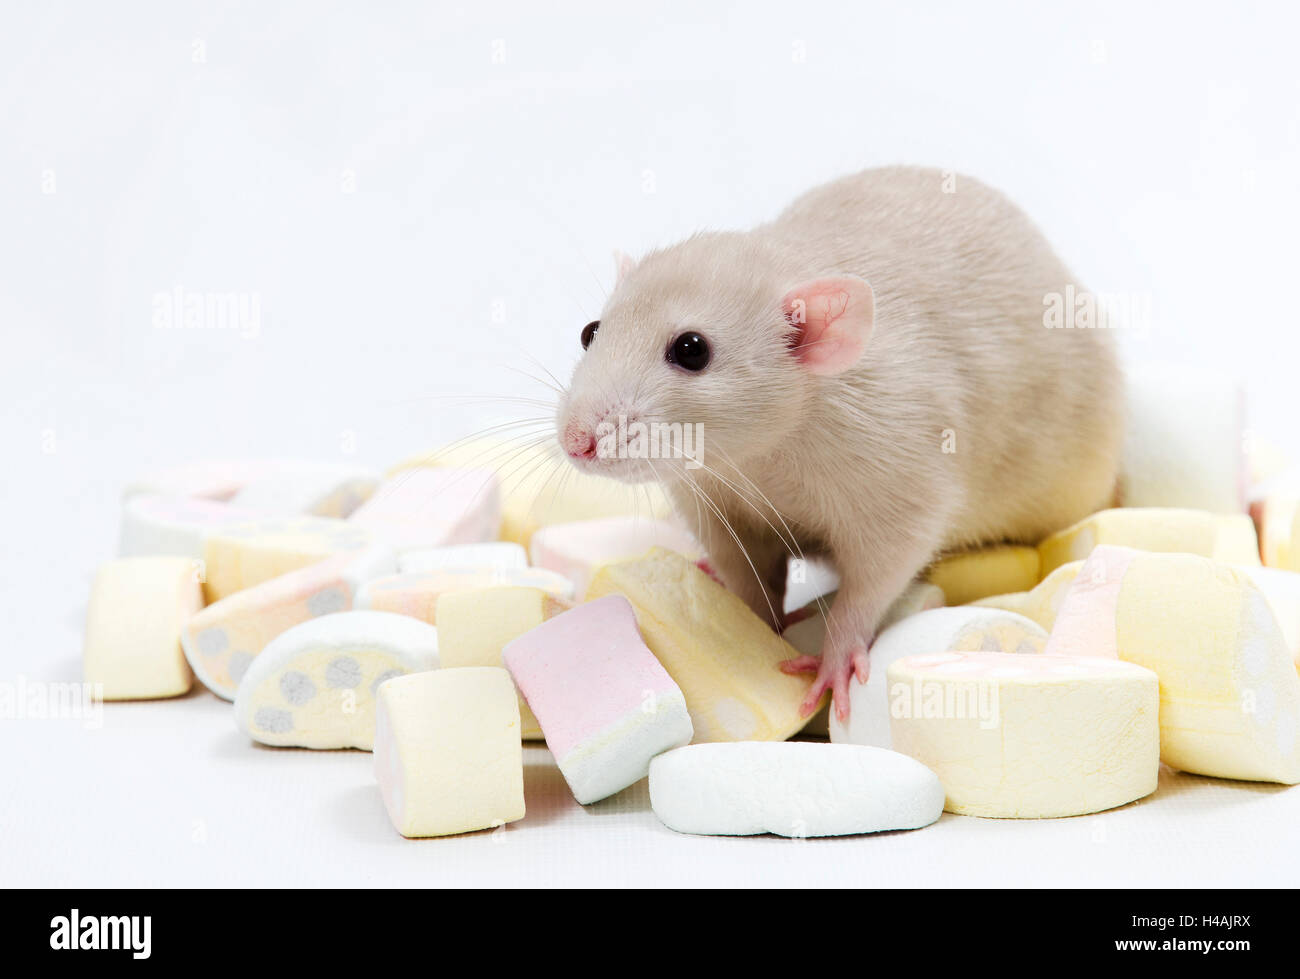 Decorative rat and marmalade. - Stock Image